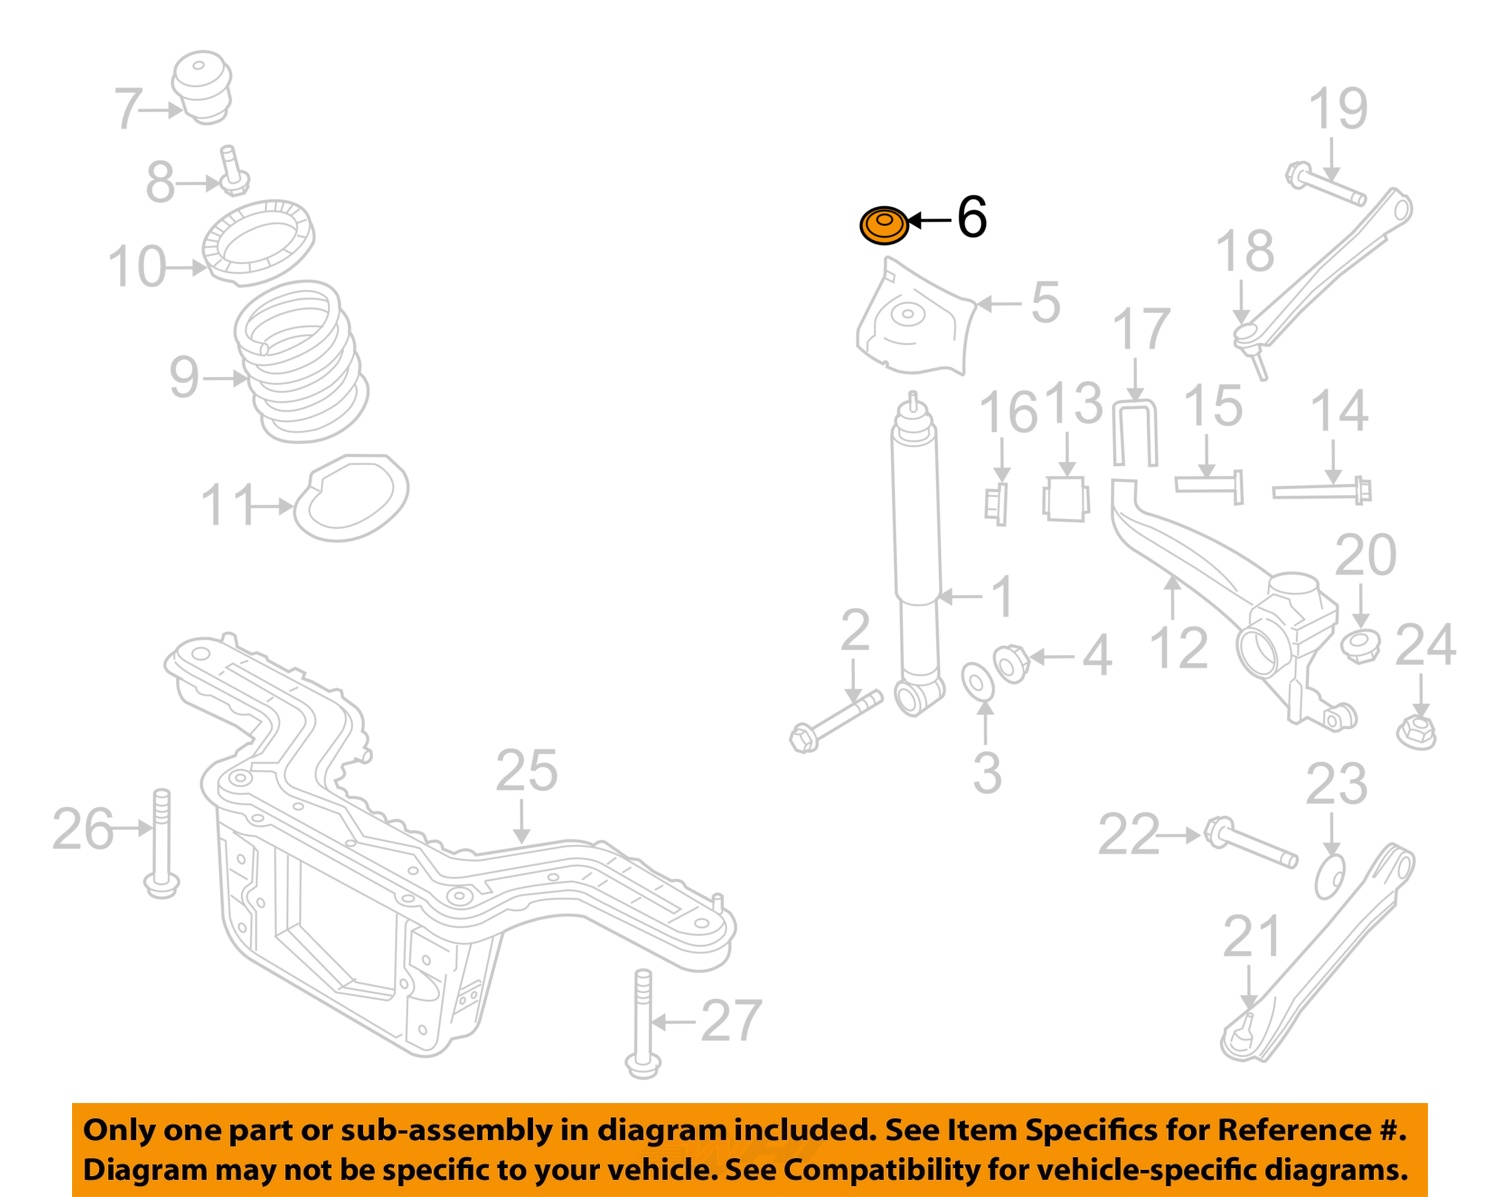 Mazda Protege5 Fuse Box Layout Electrical Wiring Diagram Protege 5 Ford Focus 2000 Chilton 2012 Fiesta 2002